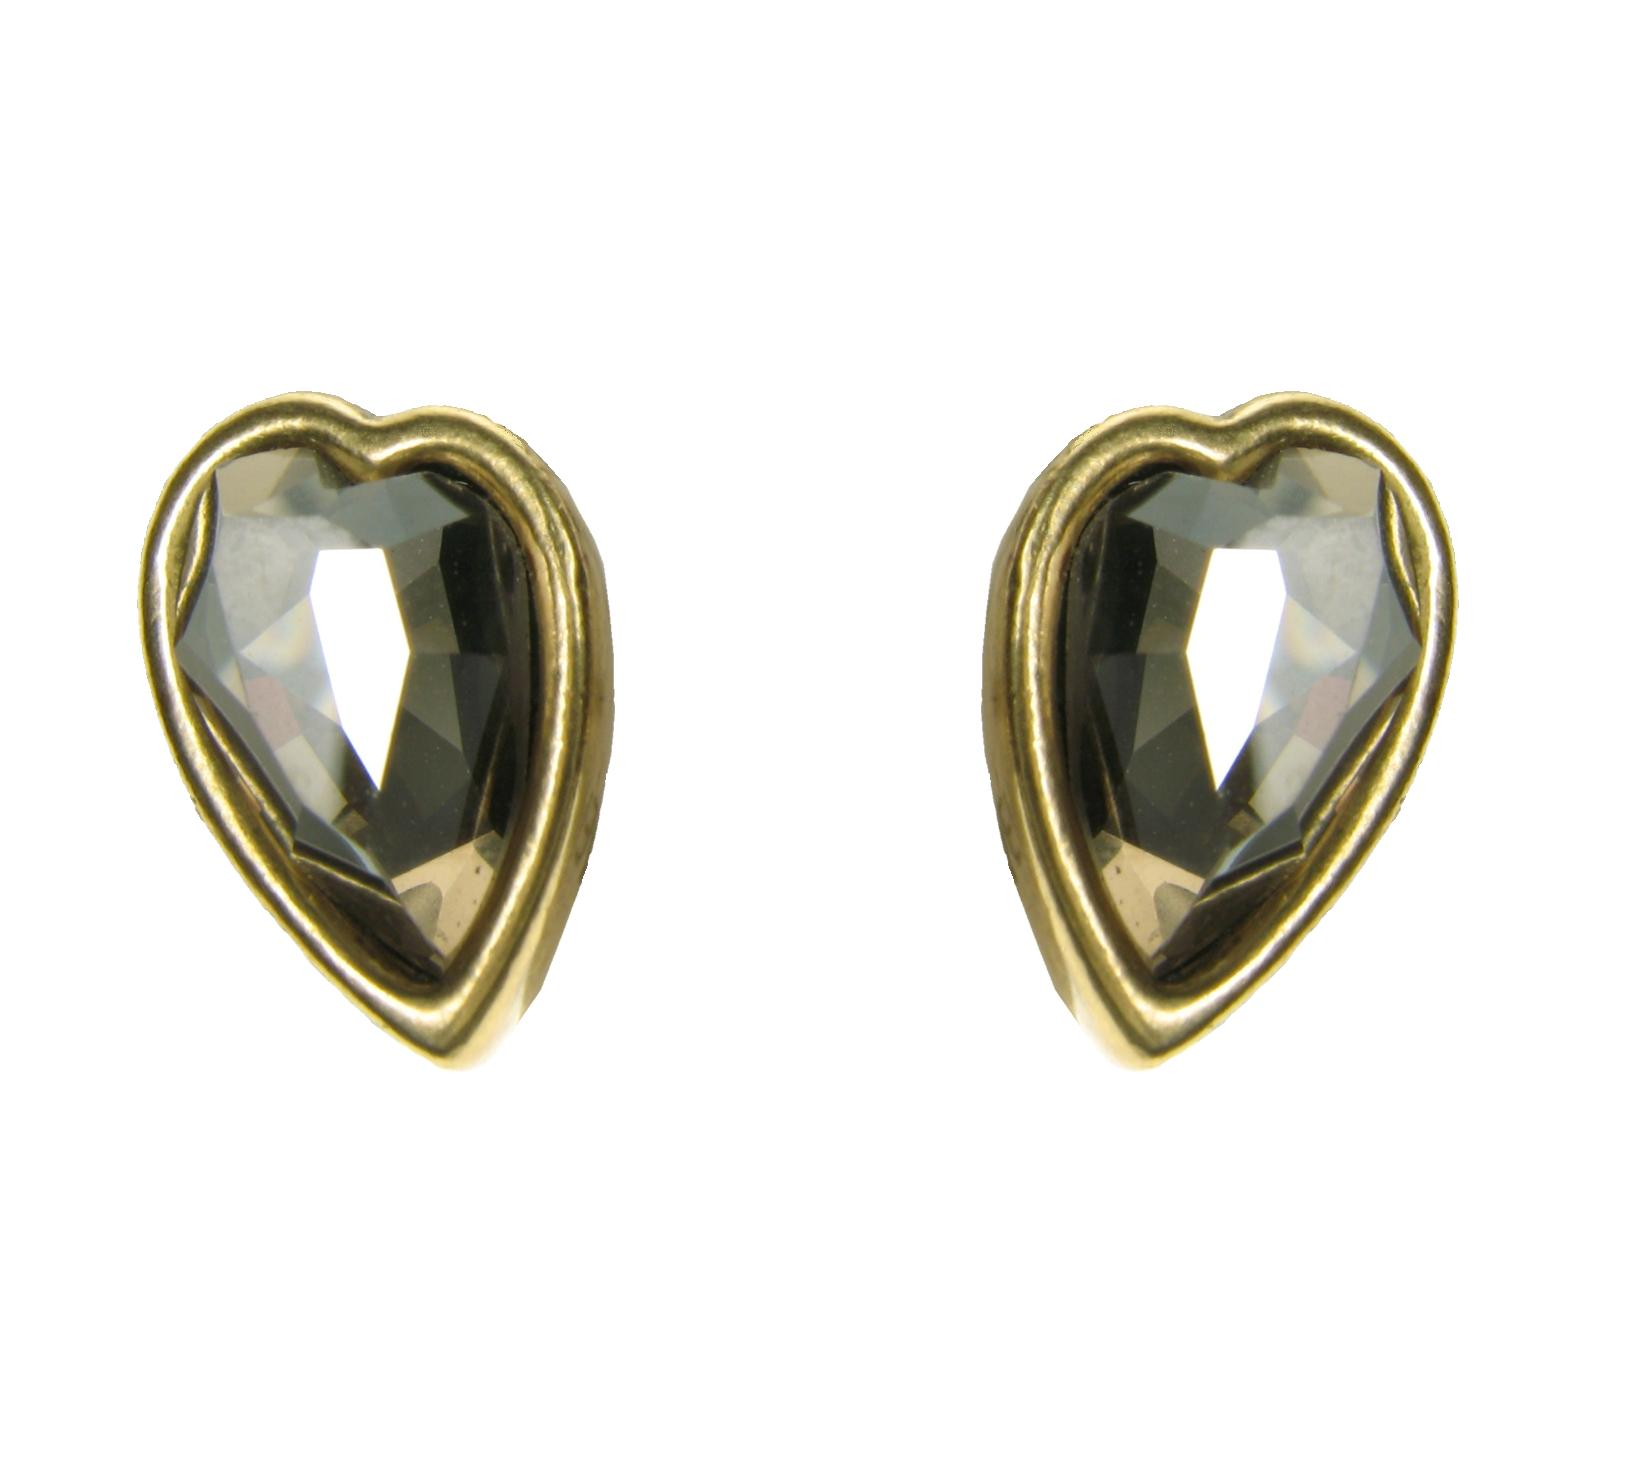 Gold Faceted Crystal Heart  Stud Earrings By A & C